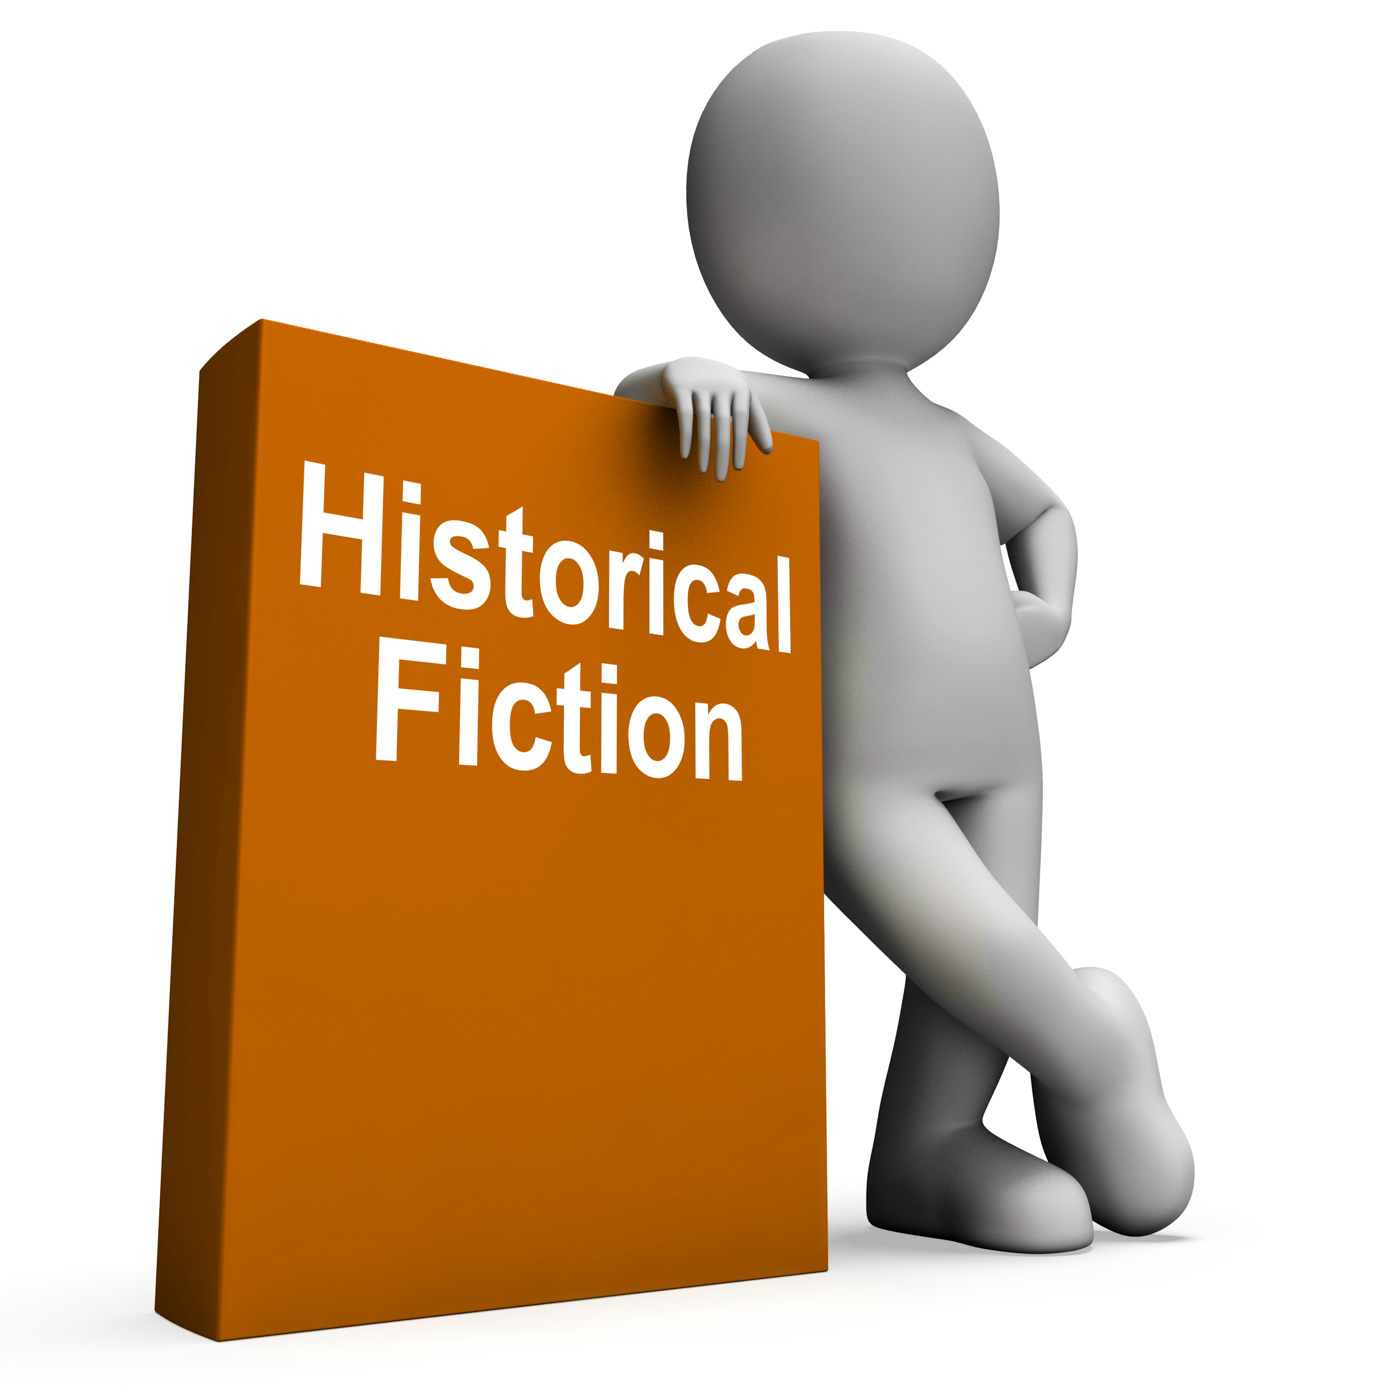 Historical fiction book and character means books from history photo